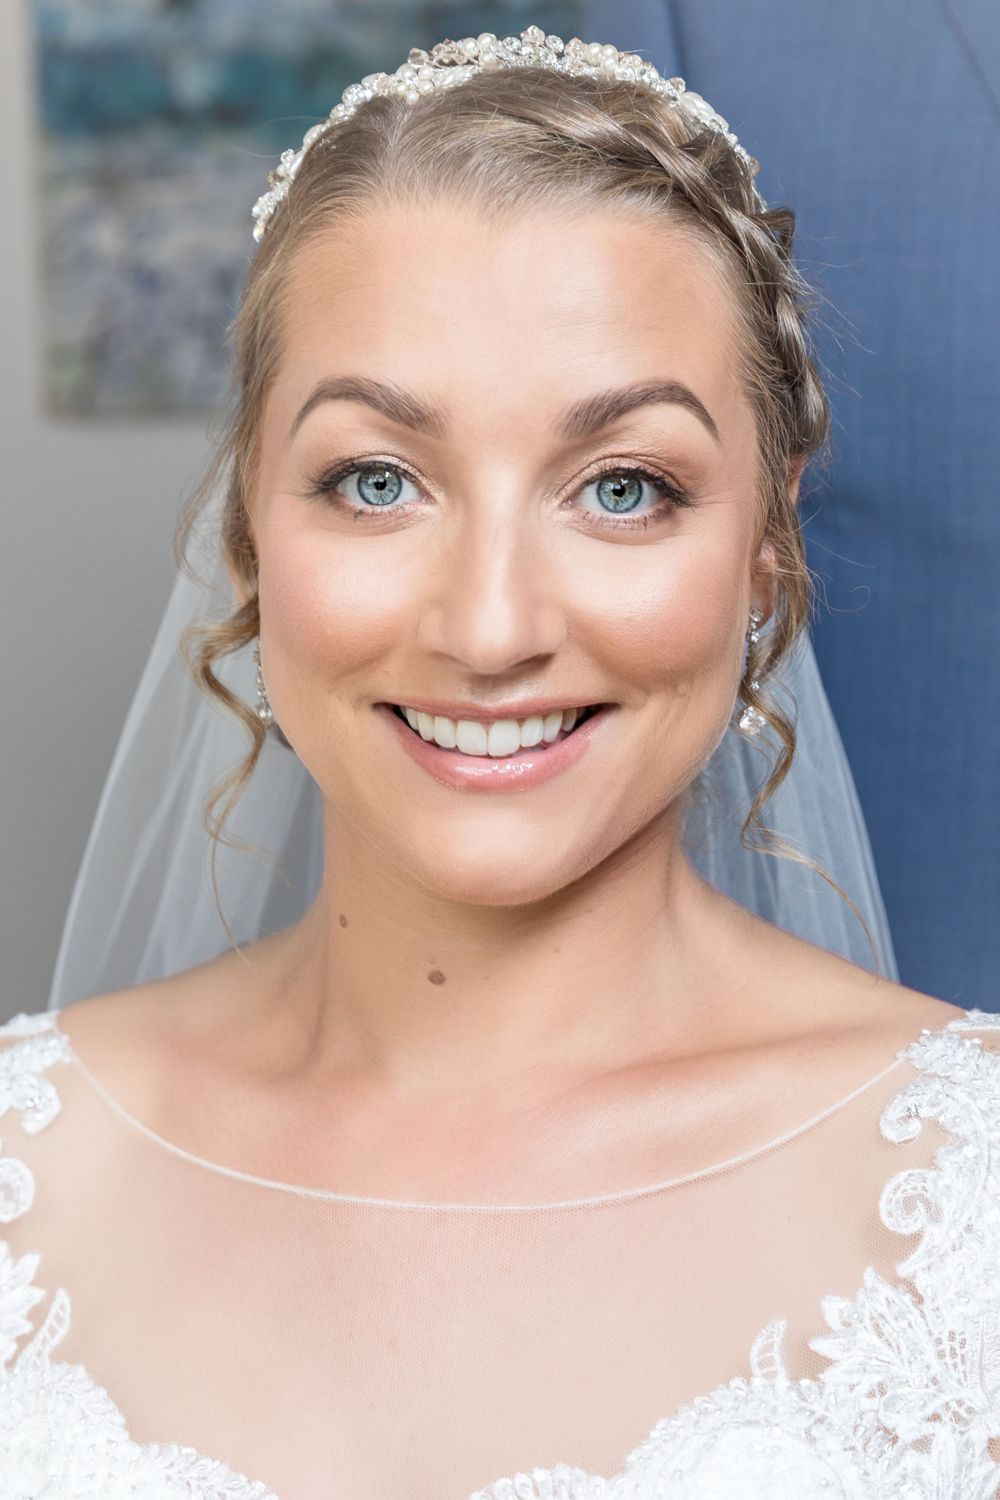 Image of smiling bride's face.